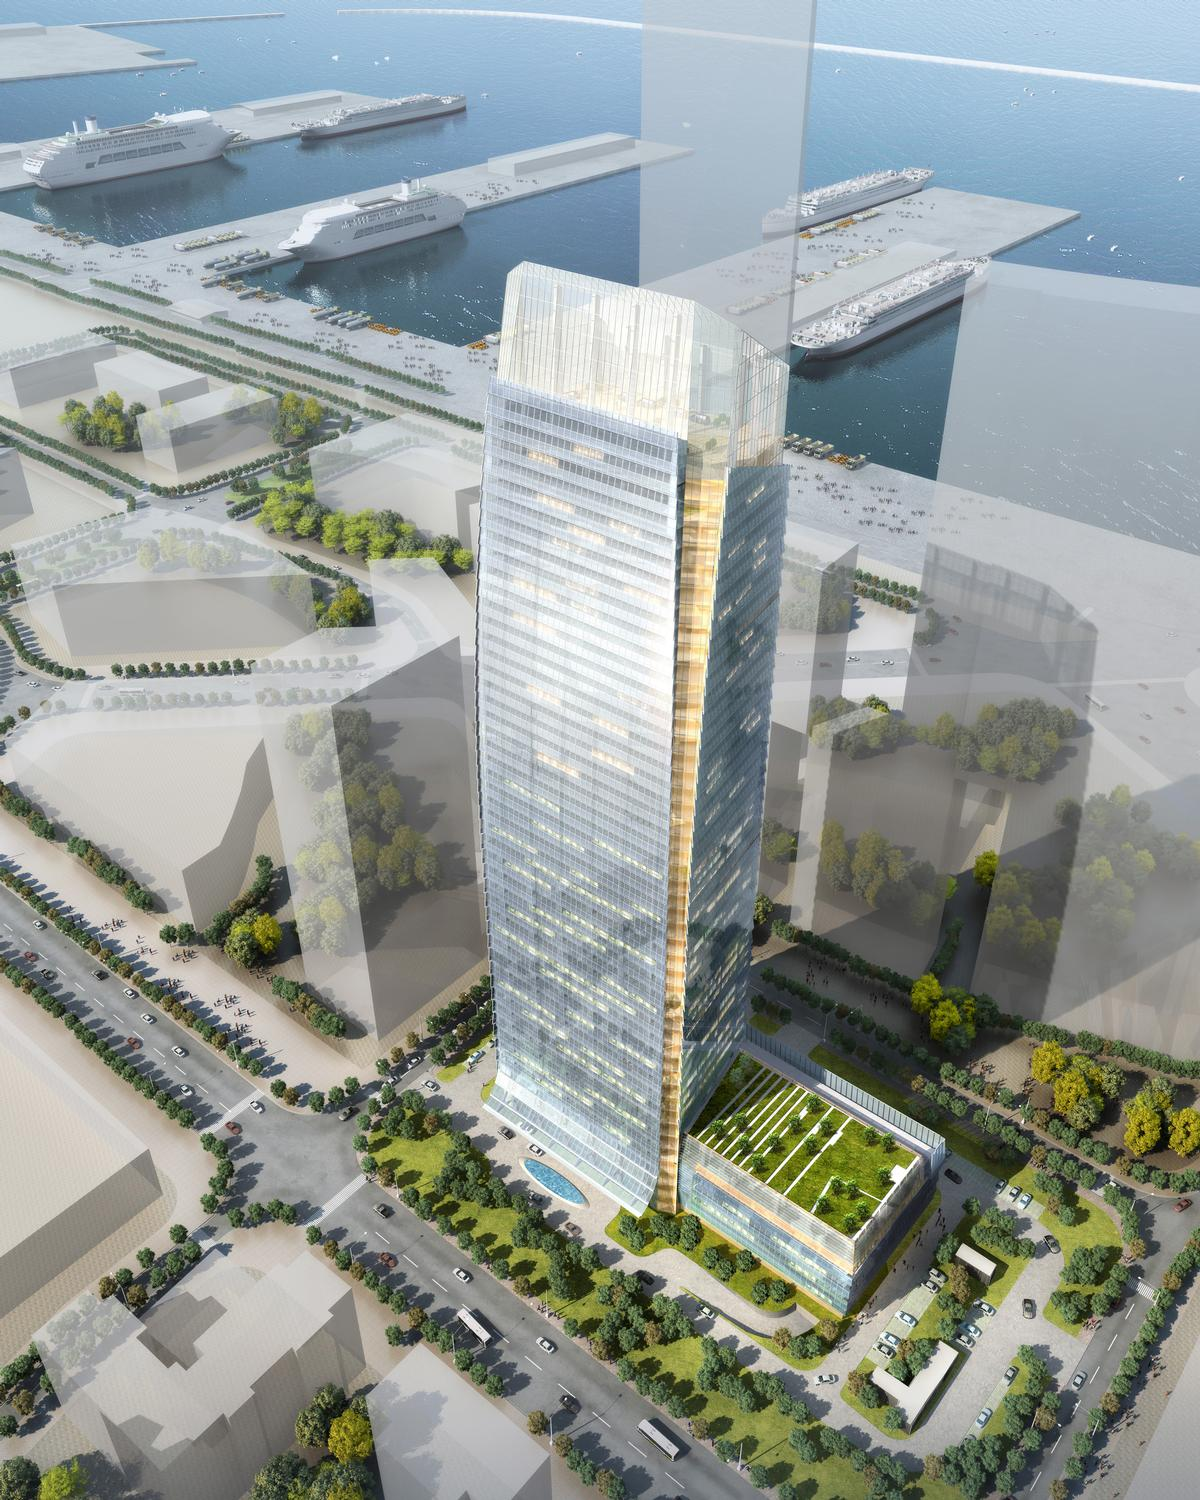 Luneng Group has appointed architects NBBJ Shanghai and designers Hirsch Bedner Associates (HBA) to create the Four Seasons Hotel Dalian / Four Seasons